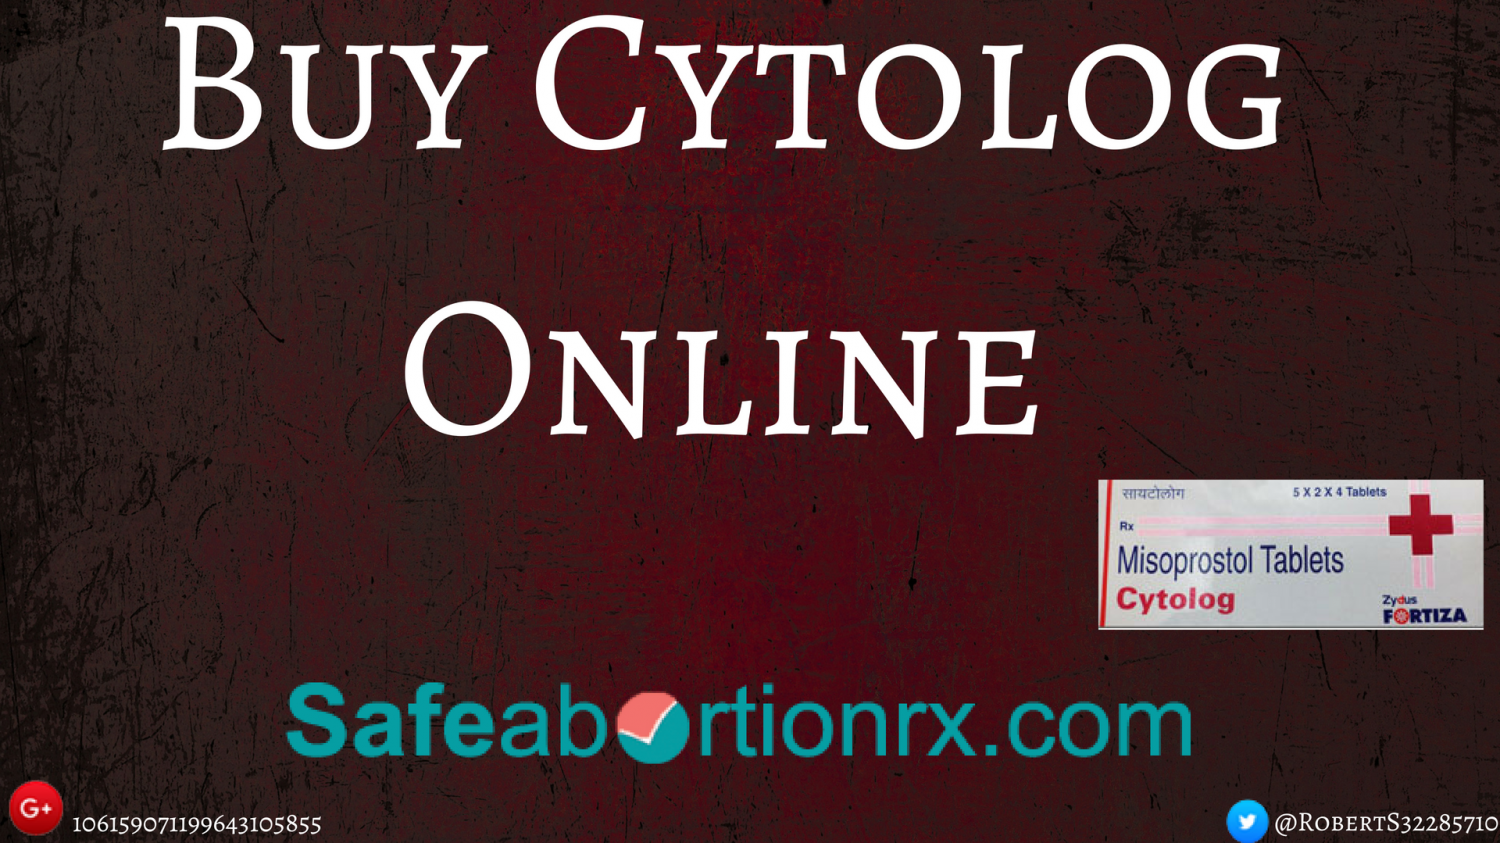 Buy Cytolog Online|Buy abortion pill Kit|buy abortion pills|Abortion pill pack Infographic